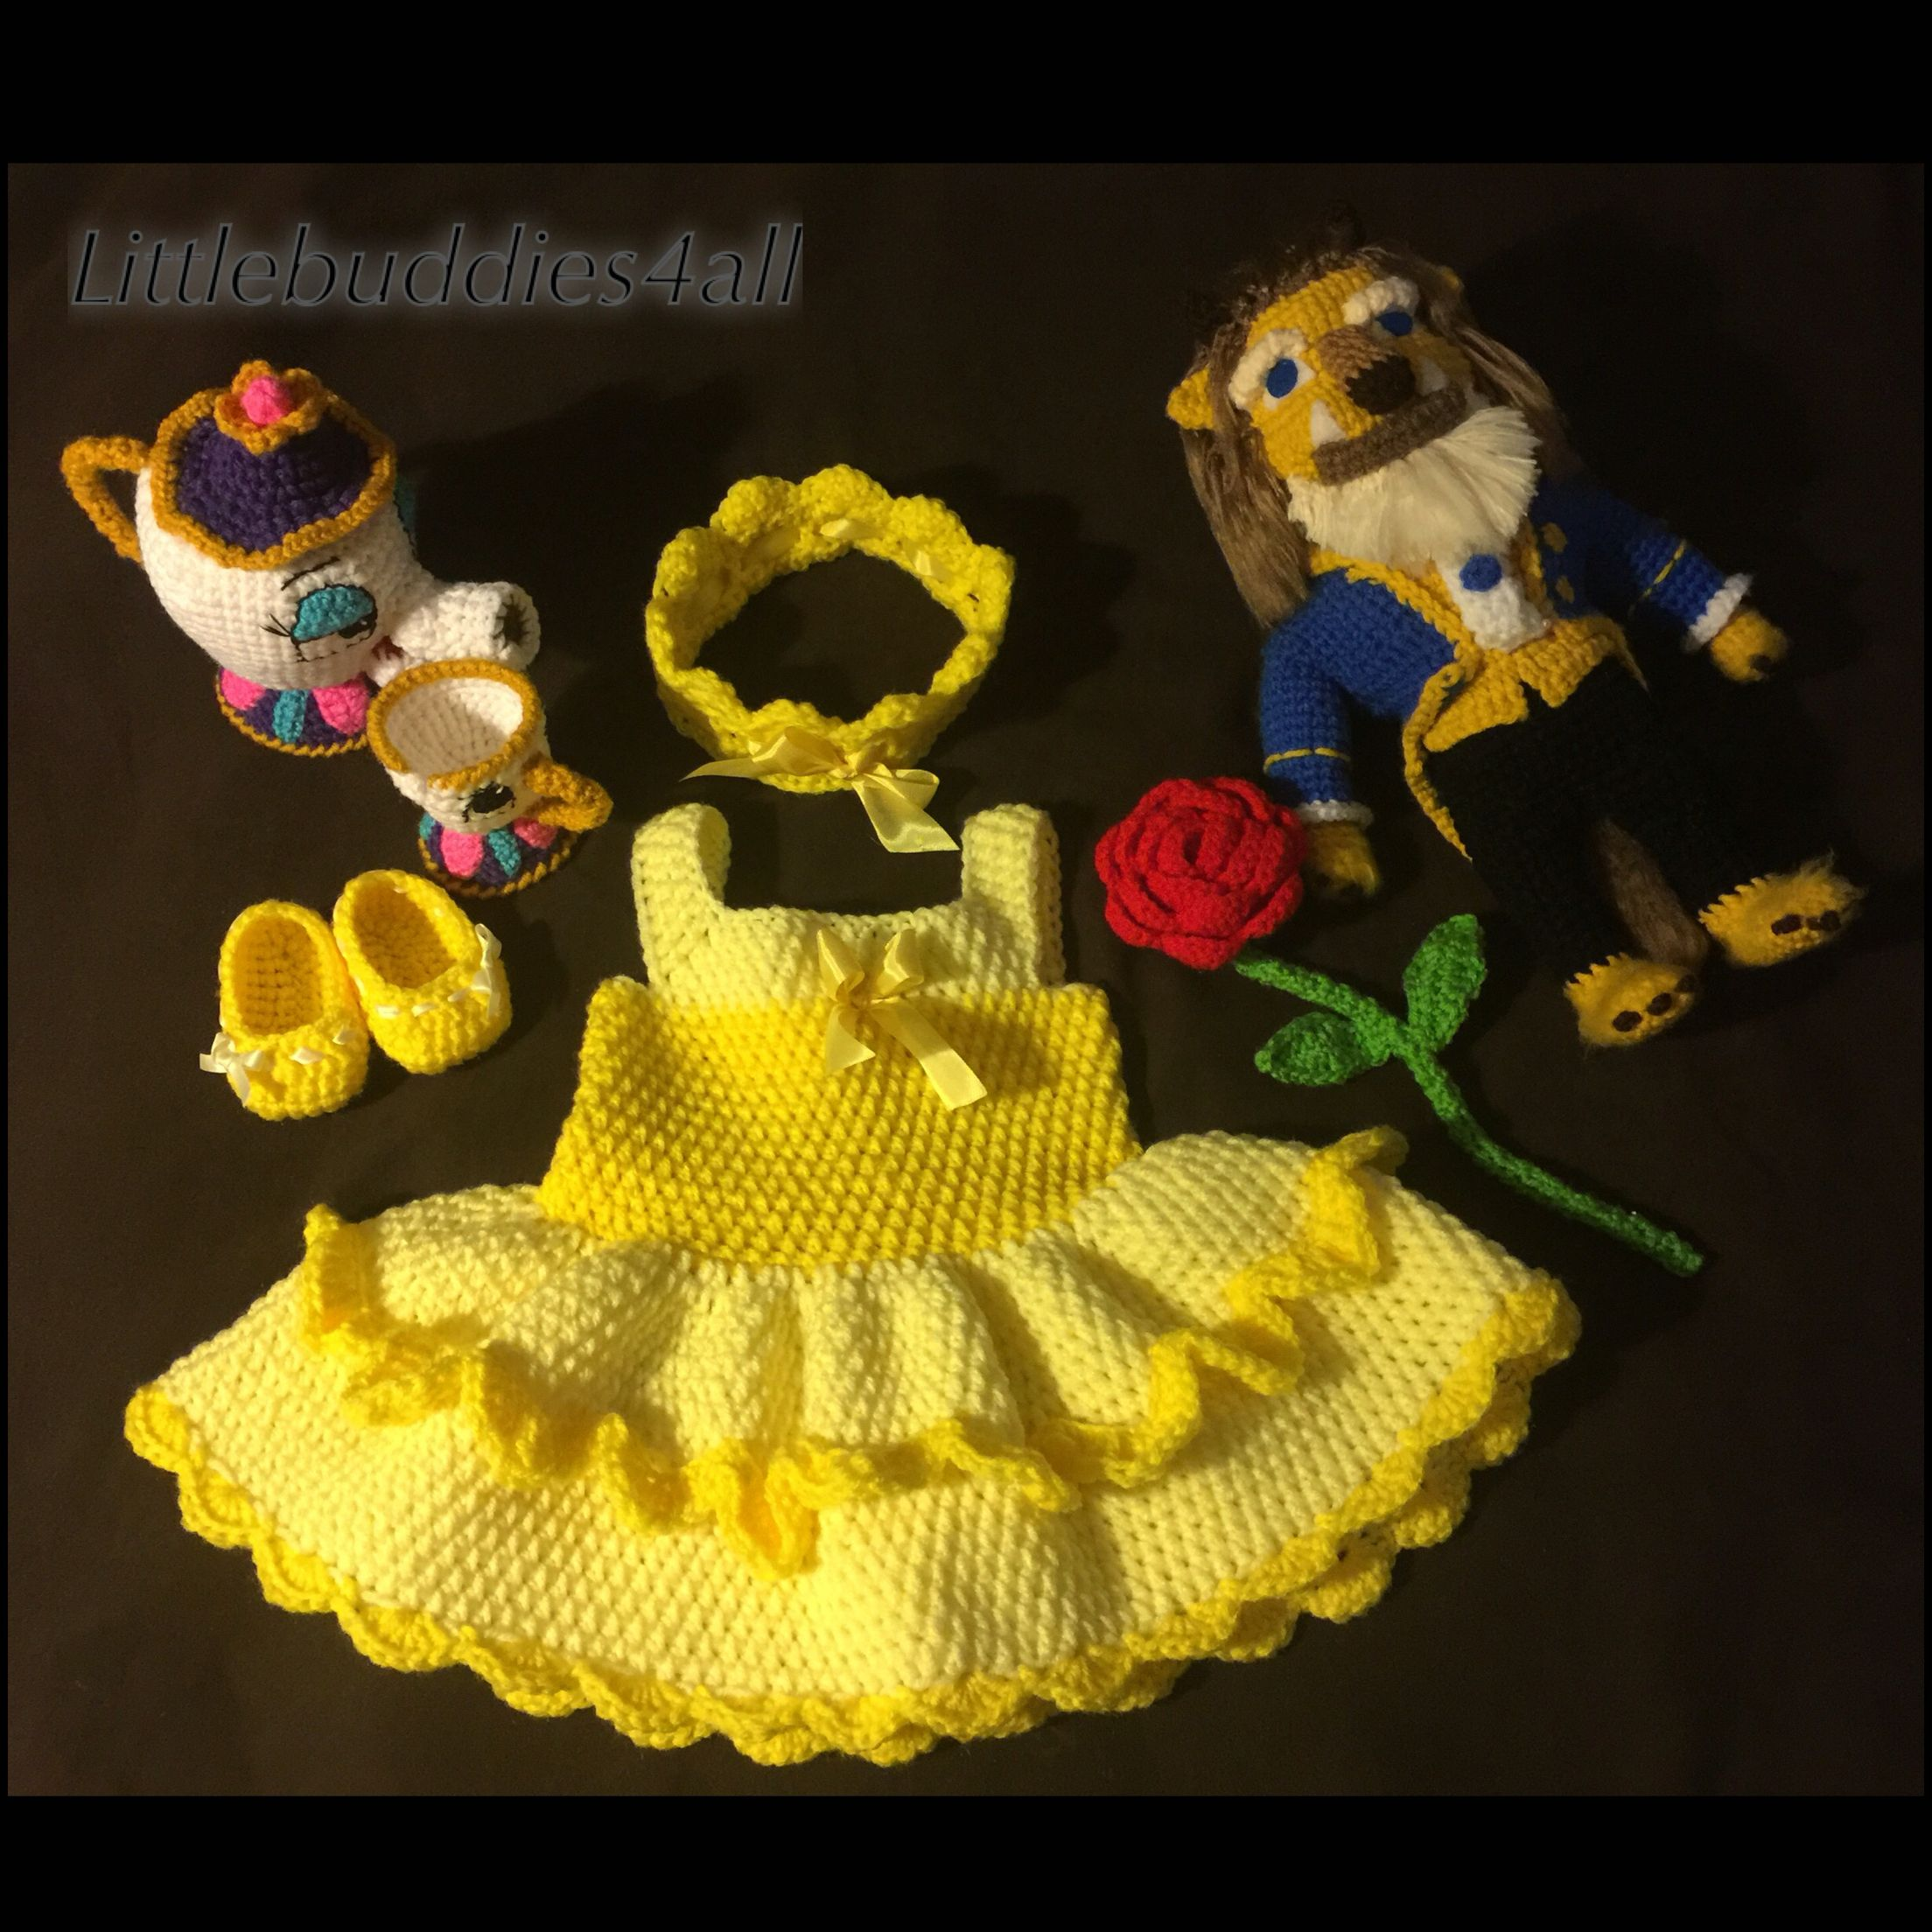 Crochet beauty and the beast inspired photo prop dress and dolls Littlebuddies4all